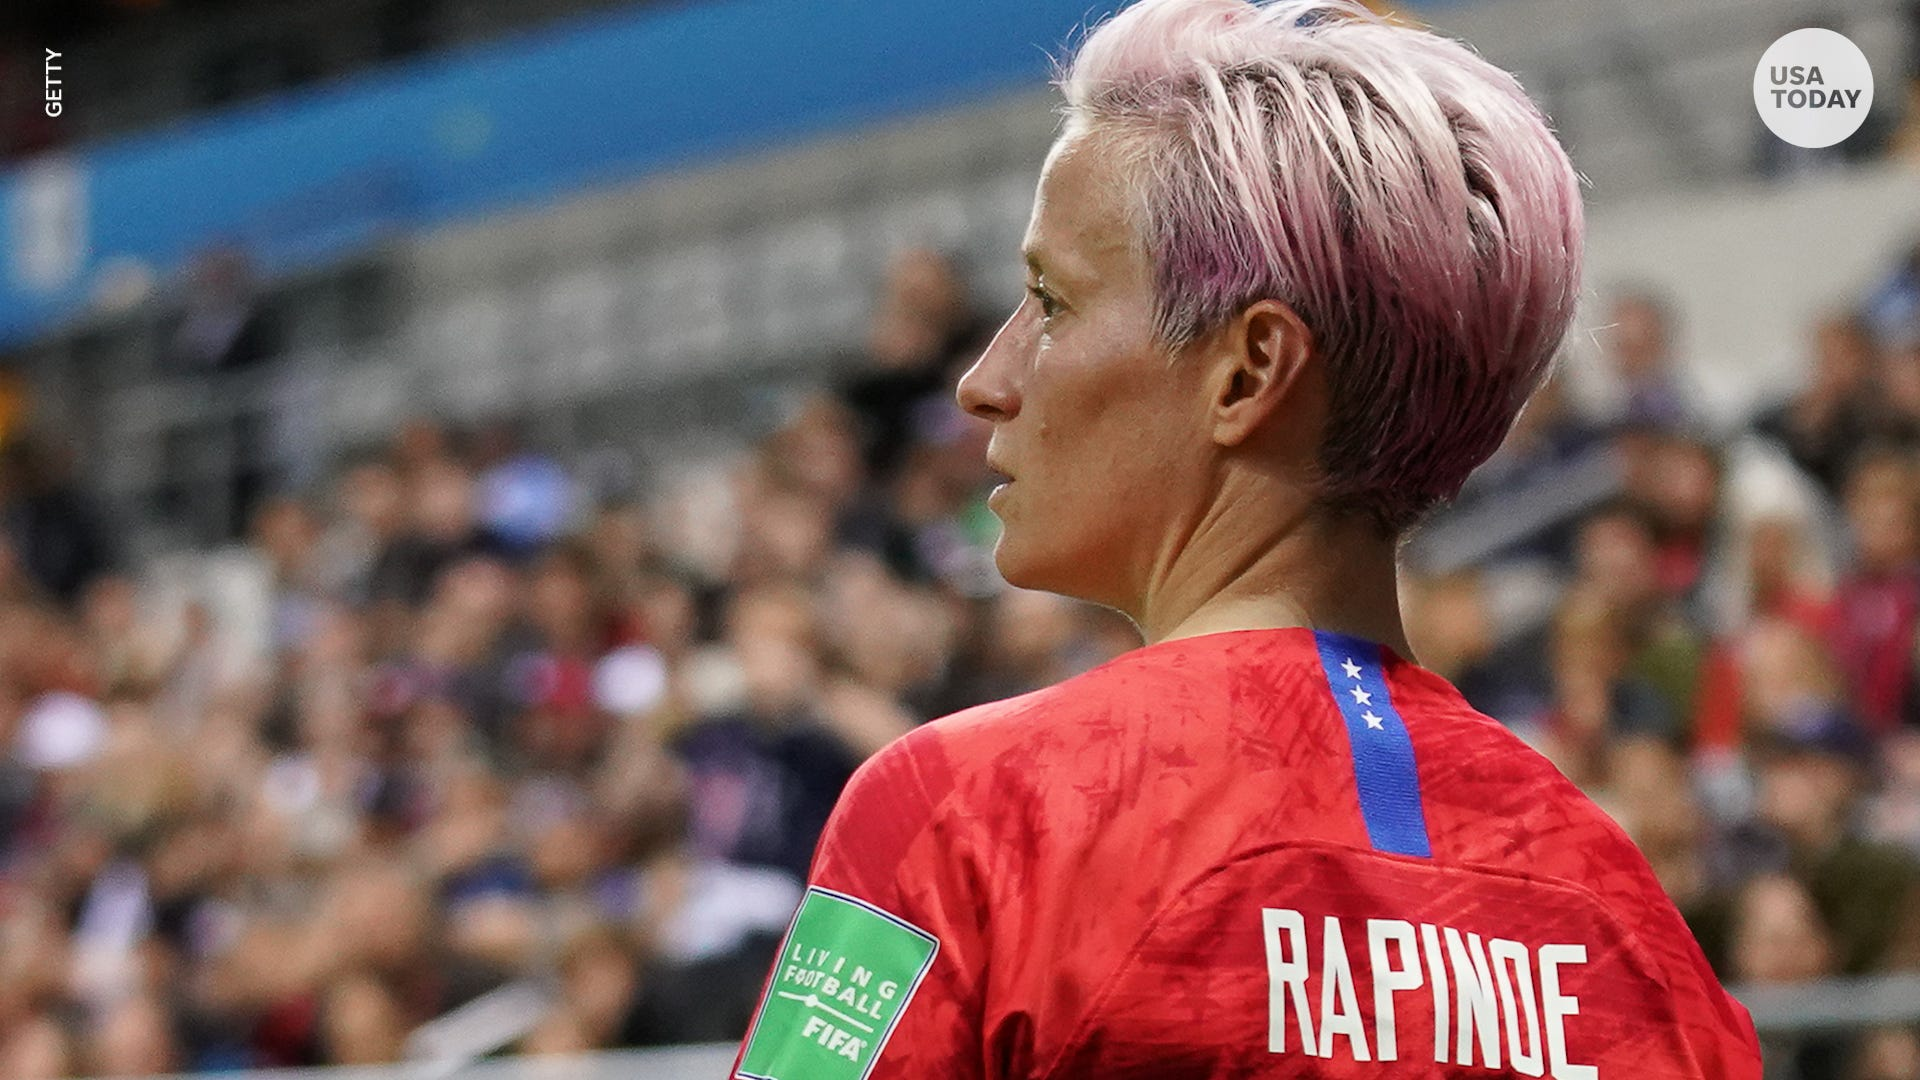 U S  soccer star Megan Rapinoe stands by her statement about not going to  the White House